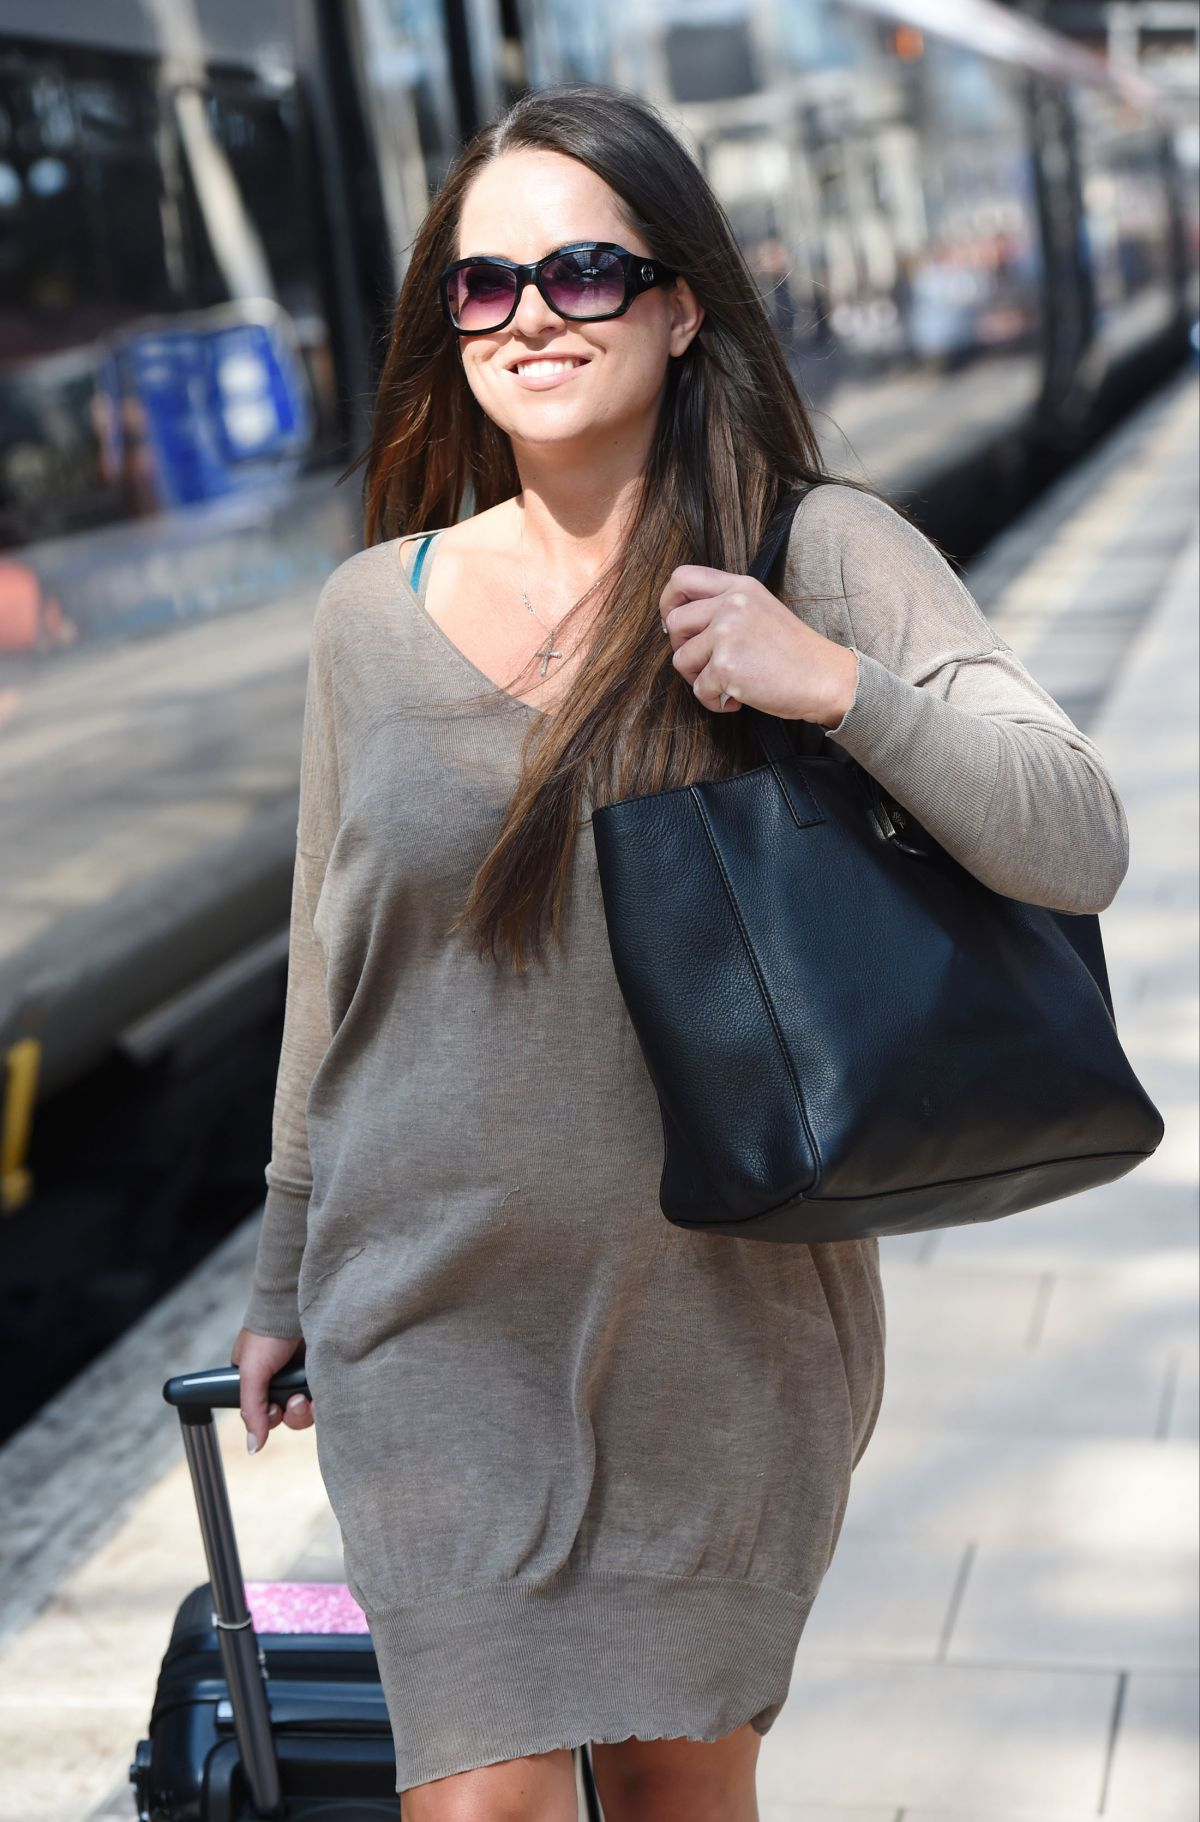 KAREN DANCZUK at Train Station in Manchester 05/12/2016